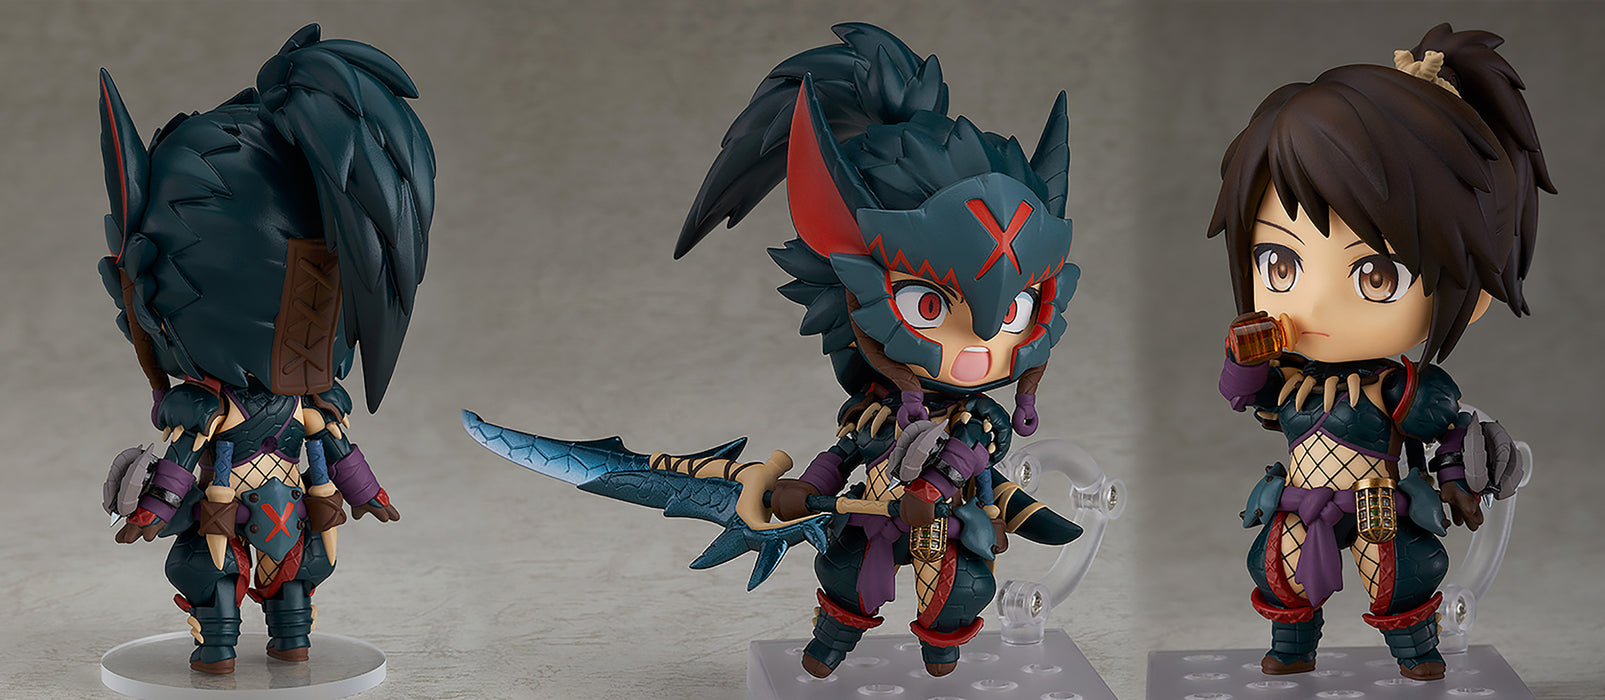 Good Smile Monster Hunter World: Iceborne - Hunter Female Nargacuga Alpha Armor (DX Ver.) Nendoroid